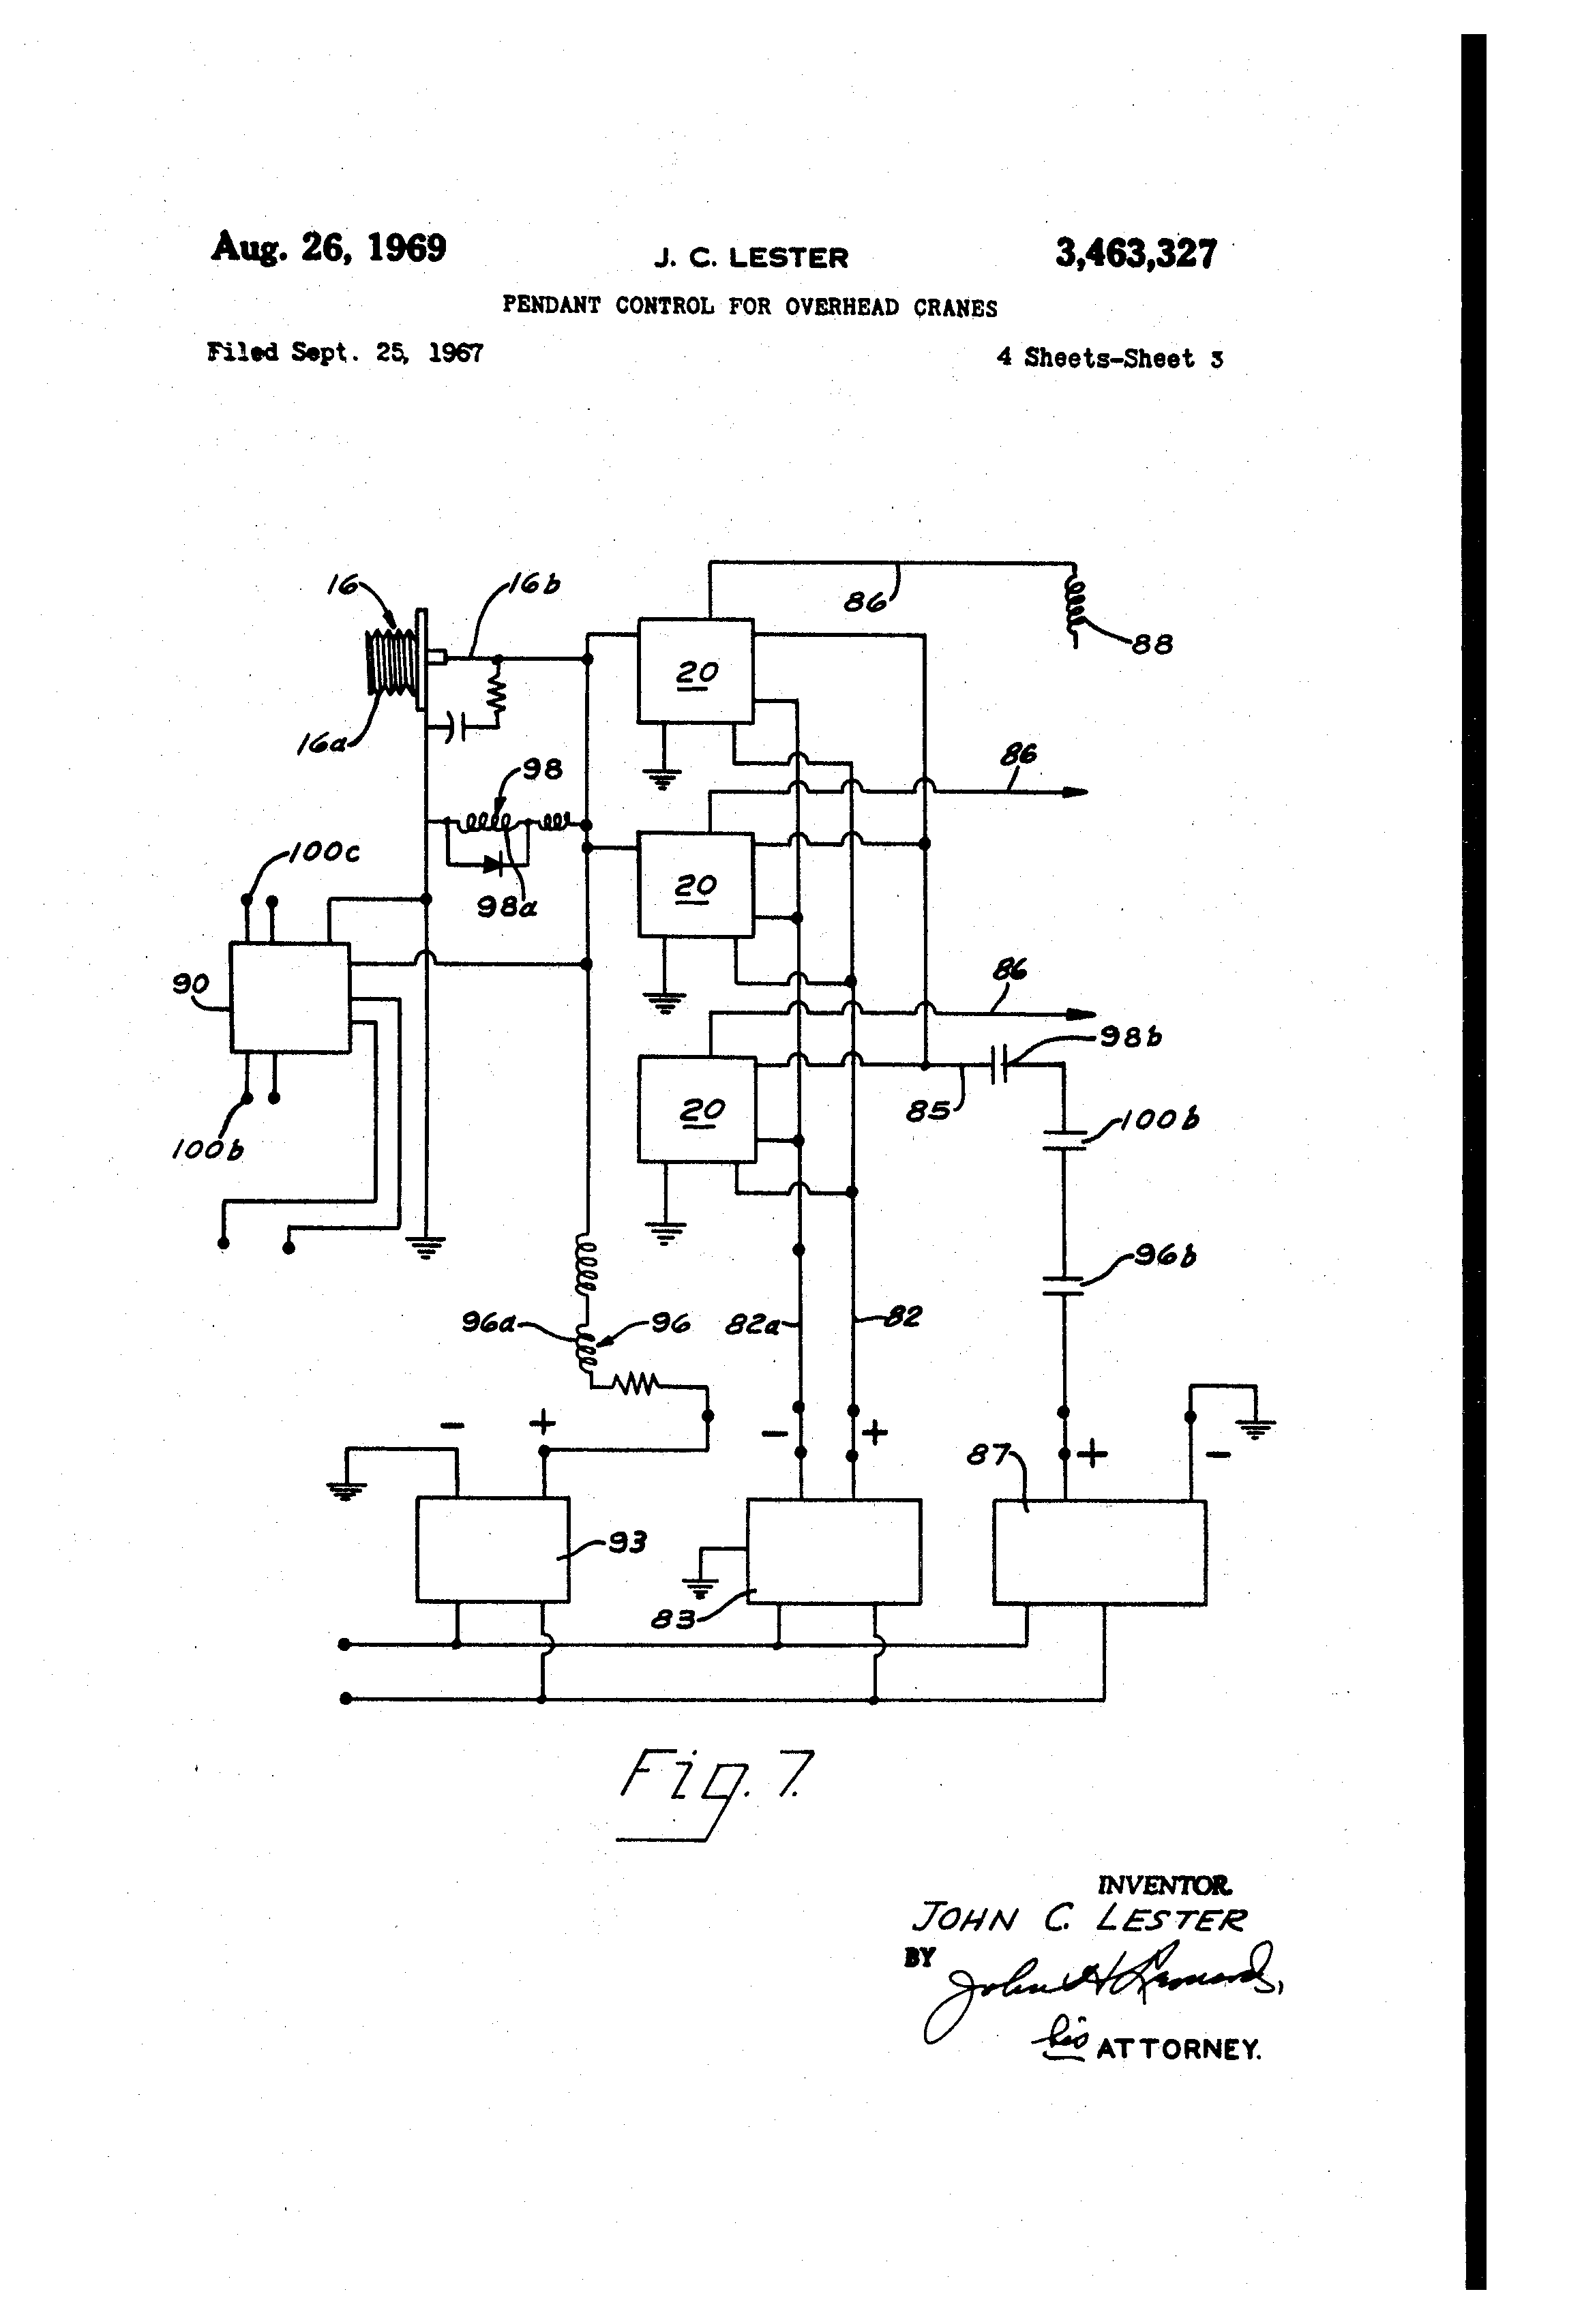 US3463327 2 patent us3463327 pendant control for overhead cranes google lester controls wiring diagrams at webbmarketing.co